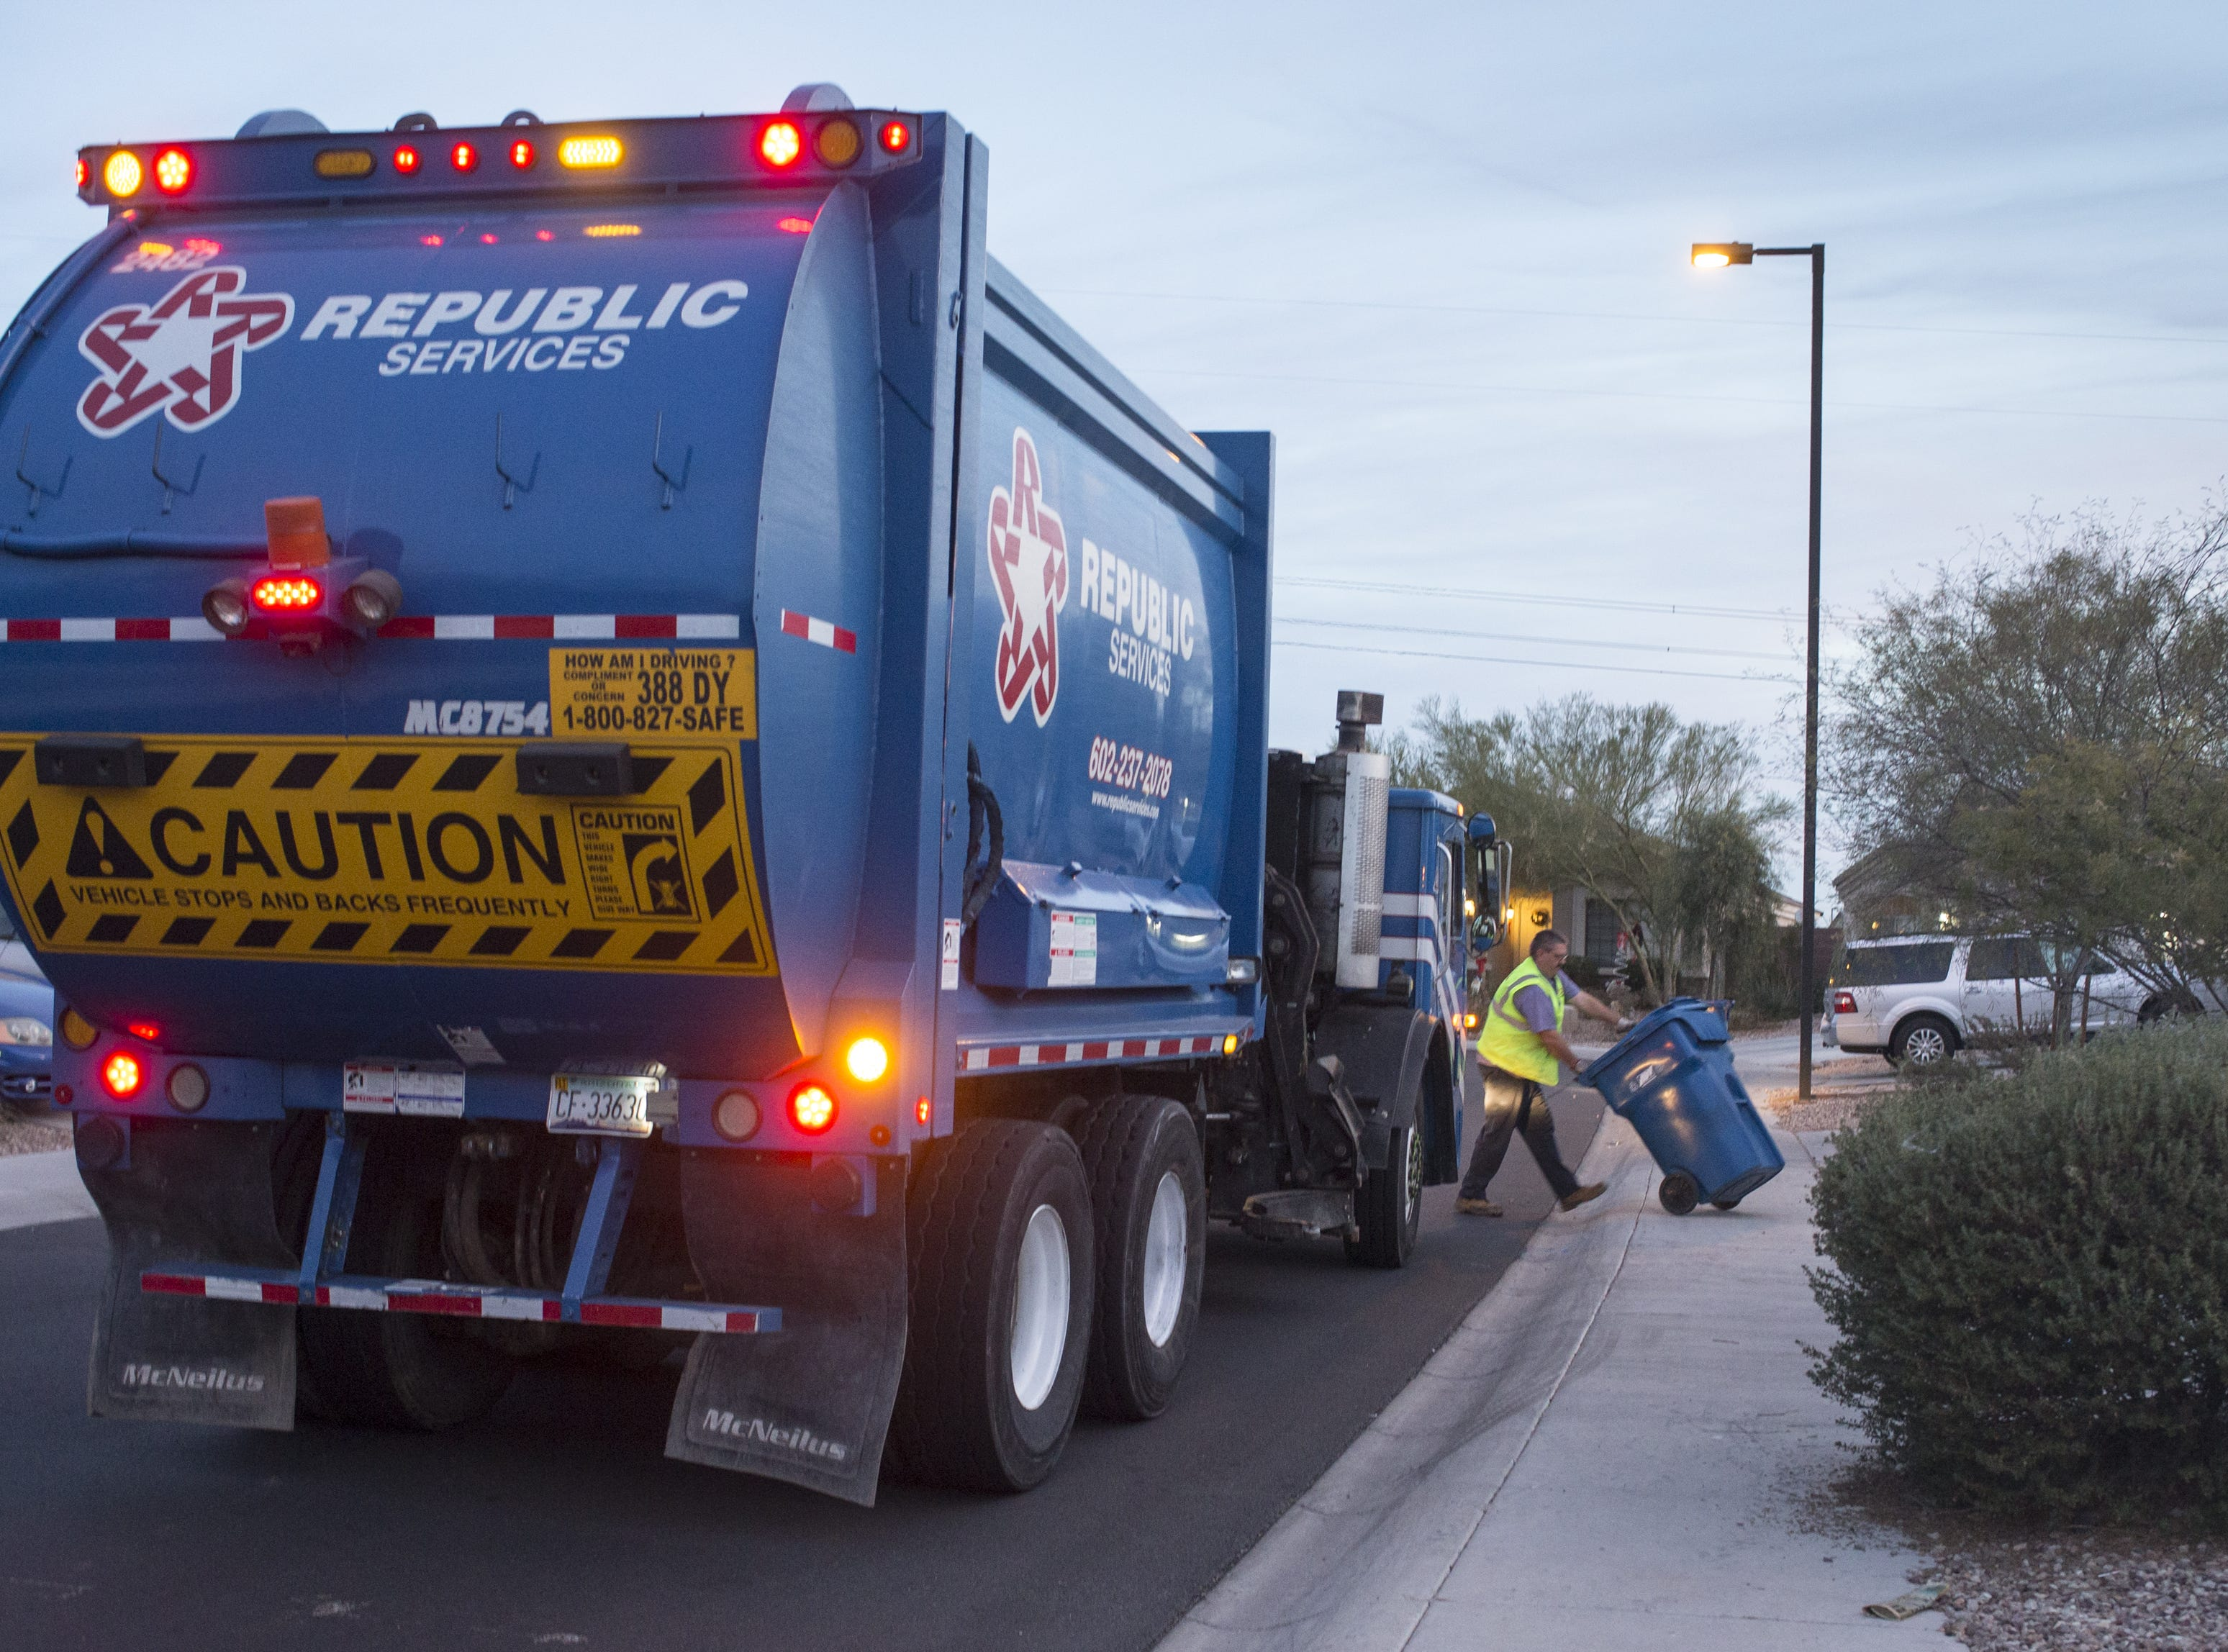 Republic Services Inc., hiring 130. The garbage collection company is filling positions ranging from drivers to analysts. More info: republicservices.jobs.